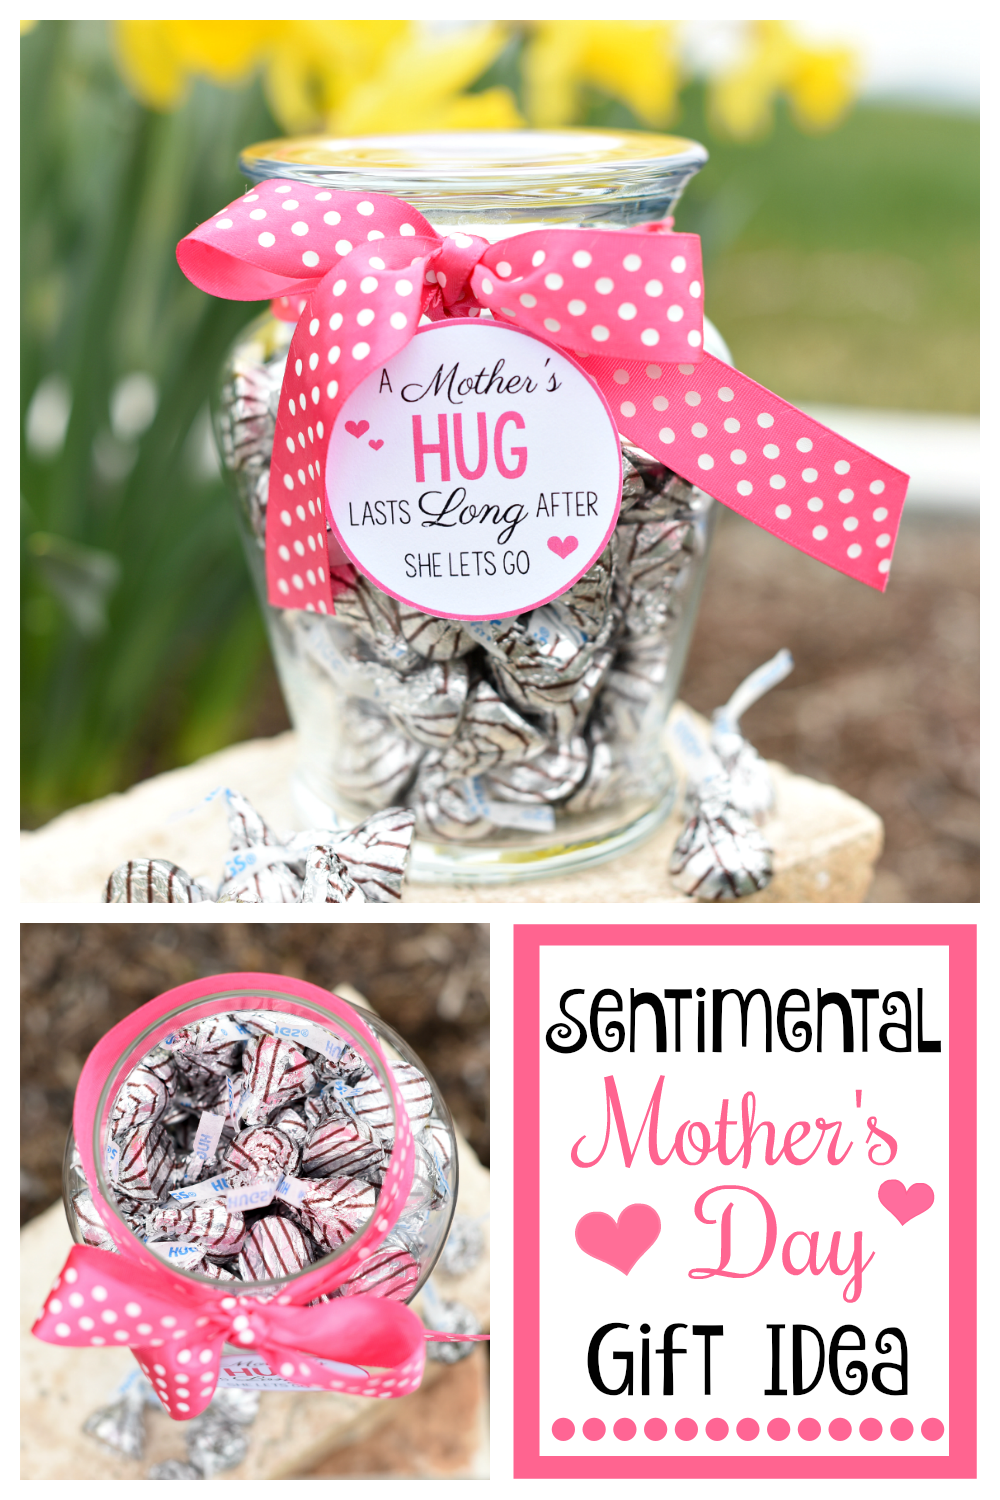 Best Gift Ideas For 13 Year Old Girls: Sentimental Gift Ideas For Mother's Day